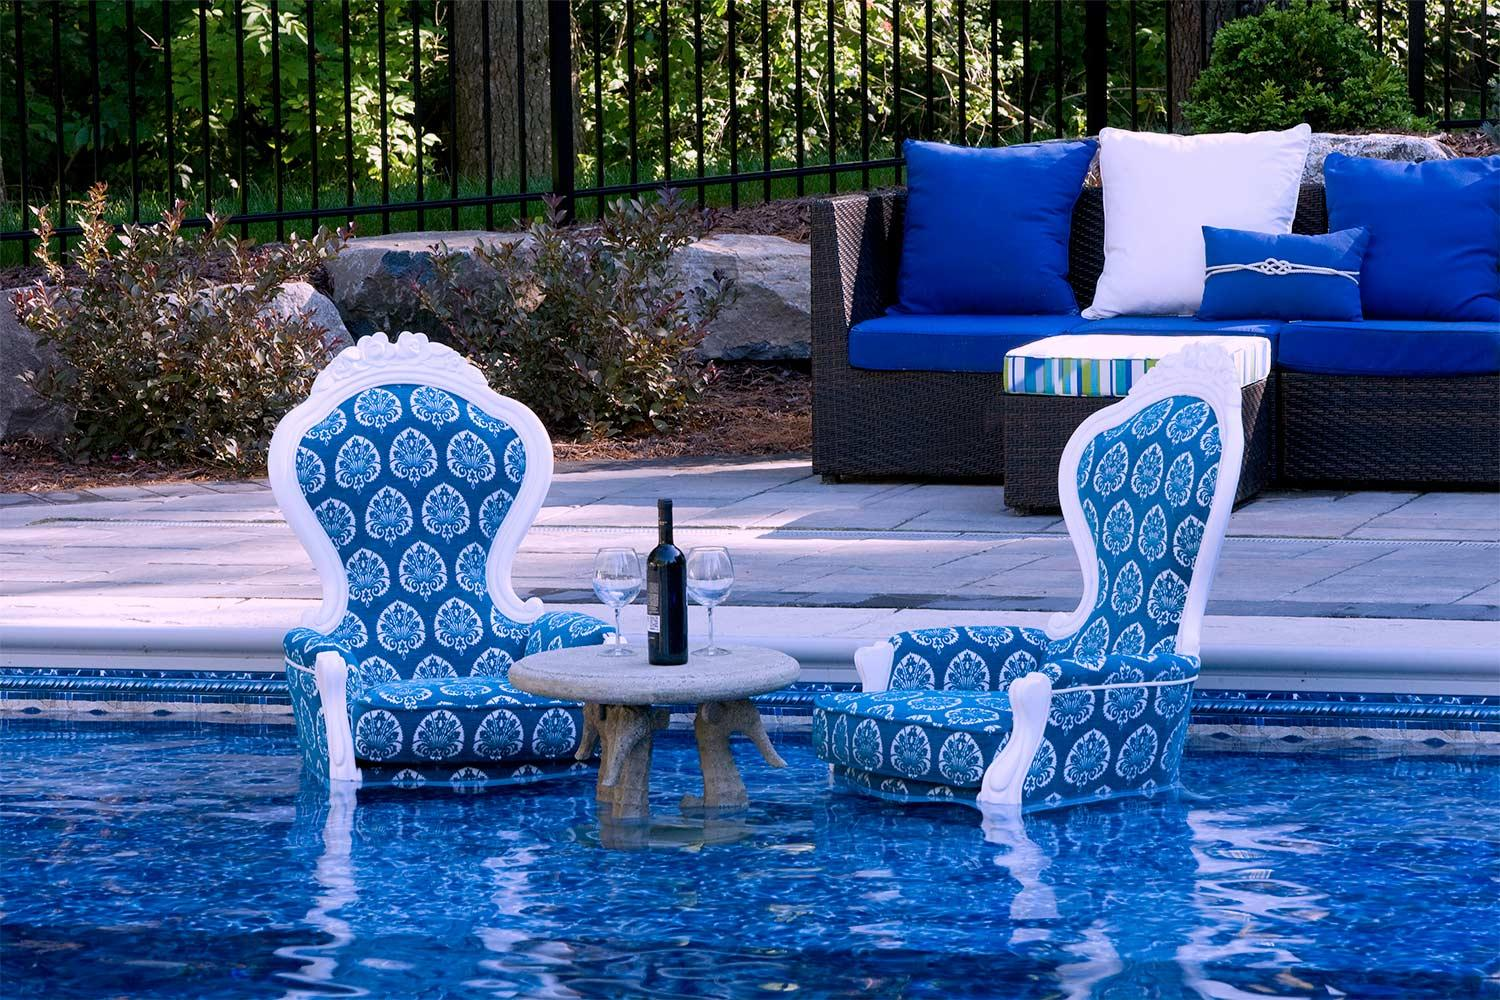 Two blue chairs with a floral leaf pattern place directly into the swimming pool.